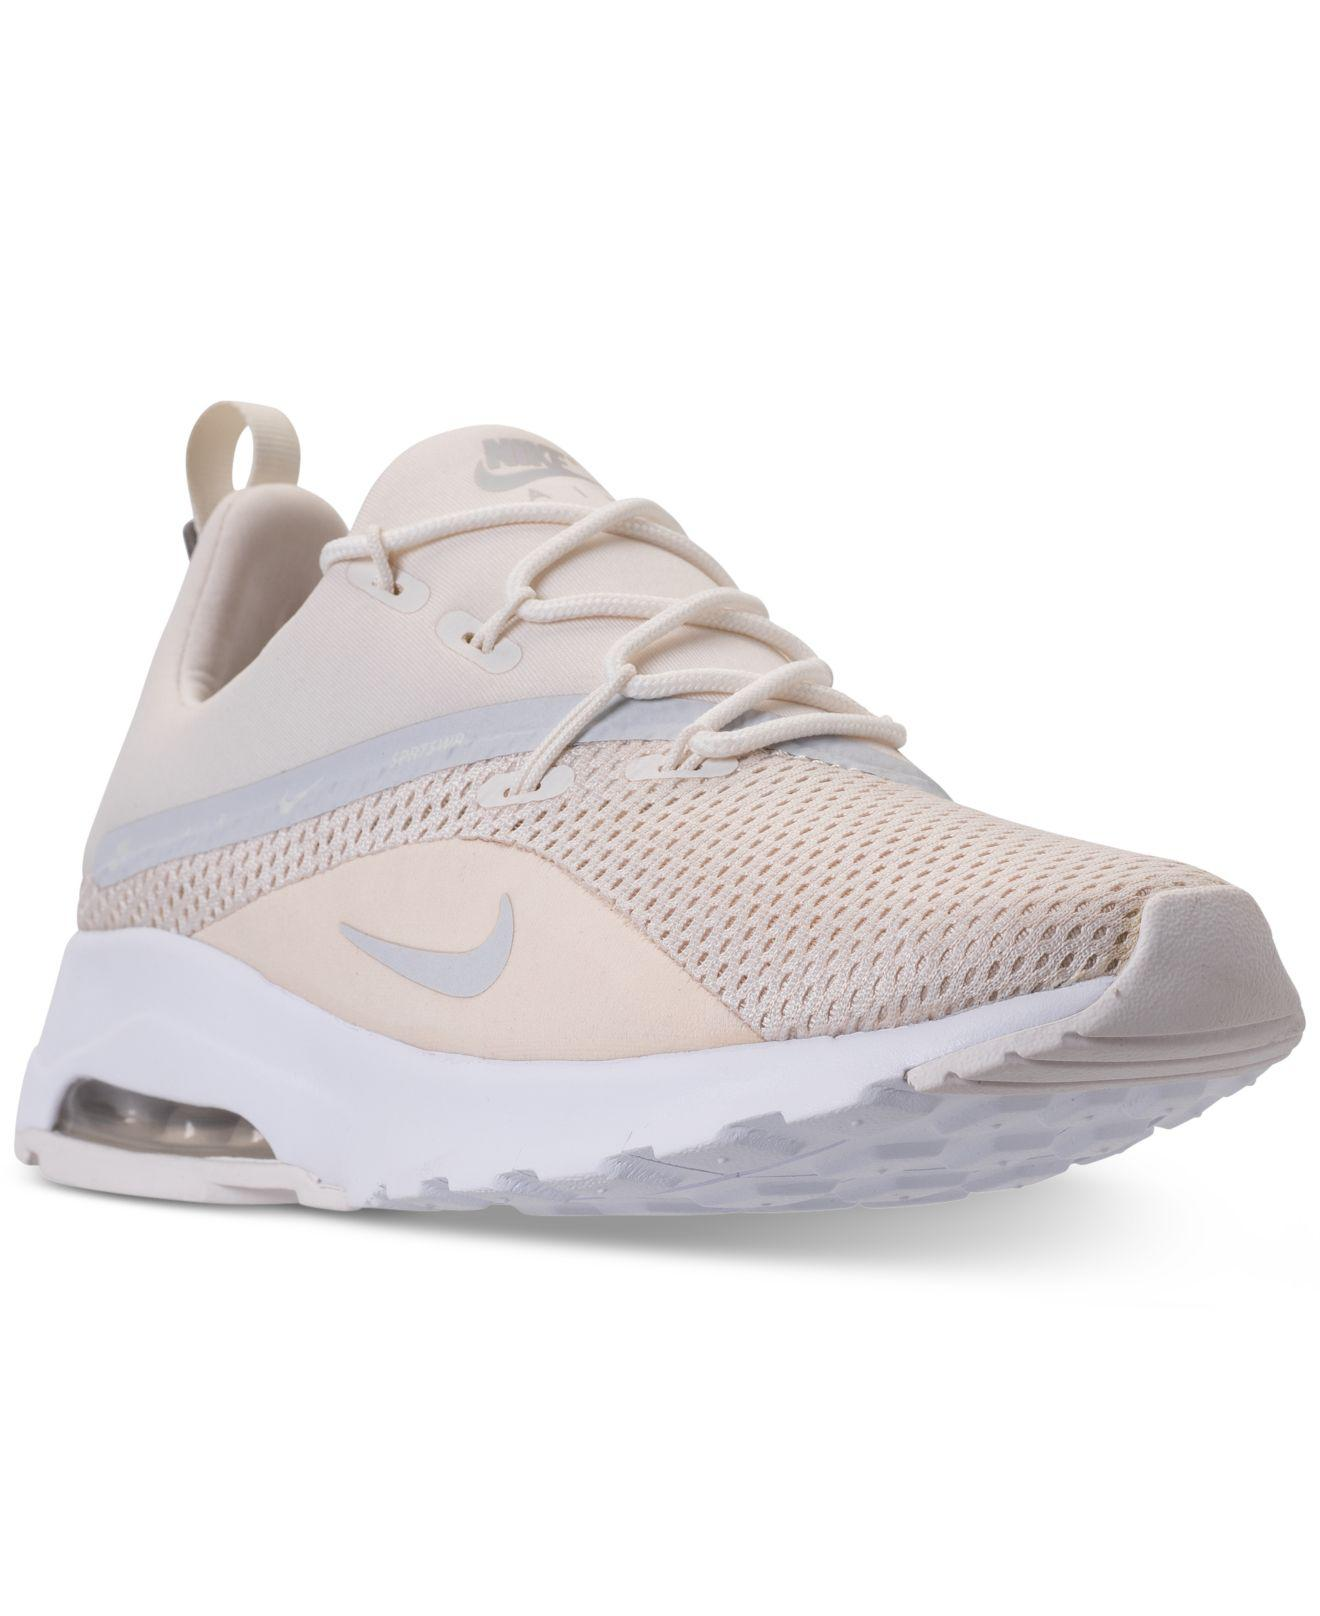 pretty nice bc4b7 a30be Nike - Multicolor Air Max Motion Racer 2 Running Sneakers From Finish Line  - Lyst. View fullscreen